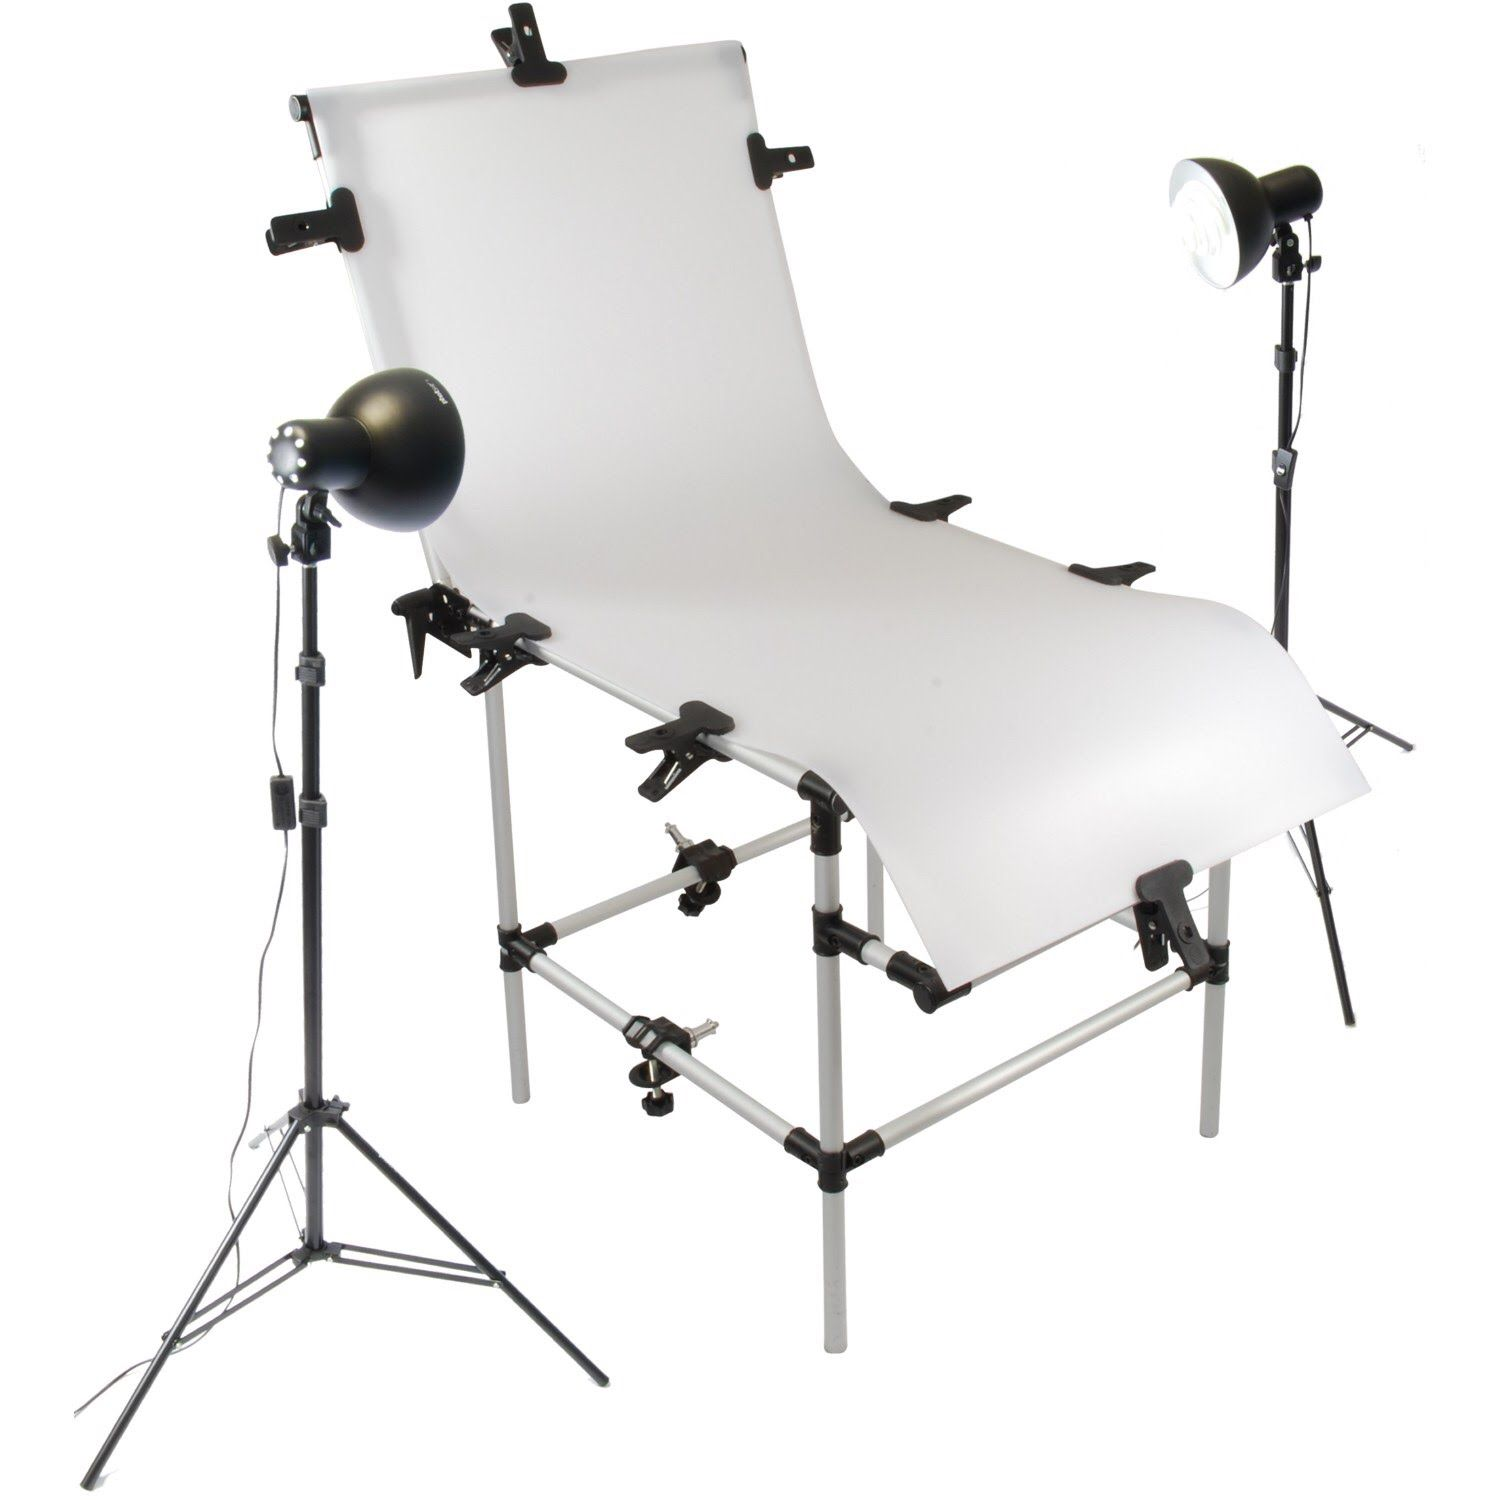 Product Photography How To Assemble A Photo Studio Shooting Table Photography Studio Setup Photo Studio Studio Setup